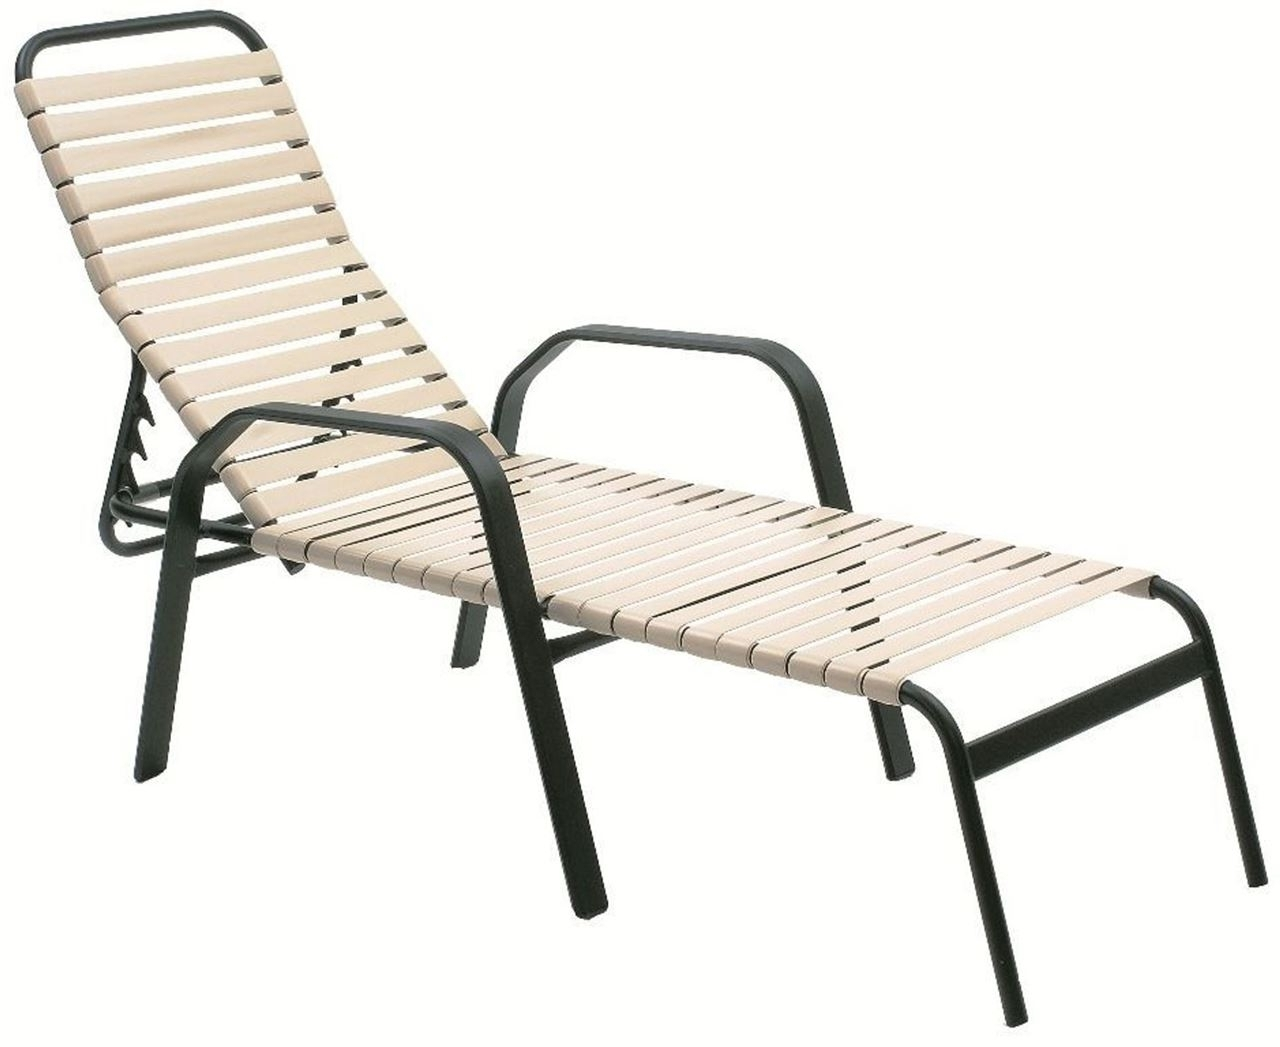 Vinyl Strap Chaise Lounge Chairs Pertaining To Most Current Vinyl Strap Chaise Lounge Chairs • Lounge Chairs Ideas (View 15 of 15)